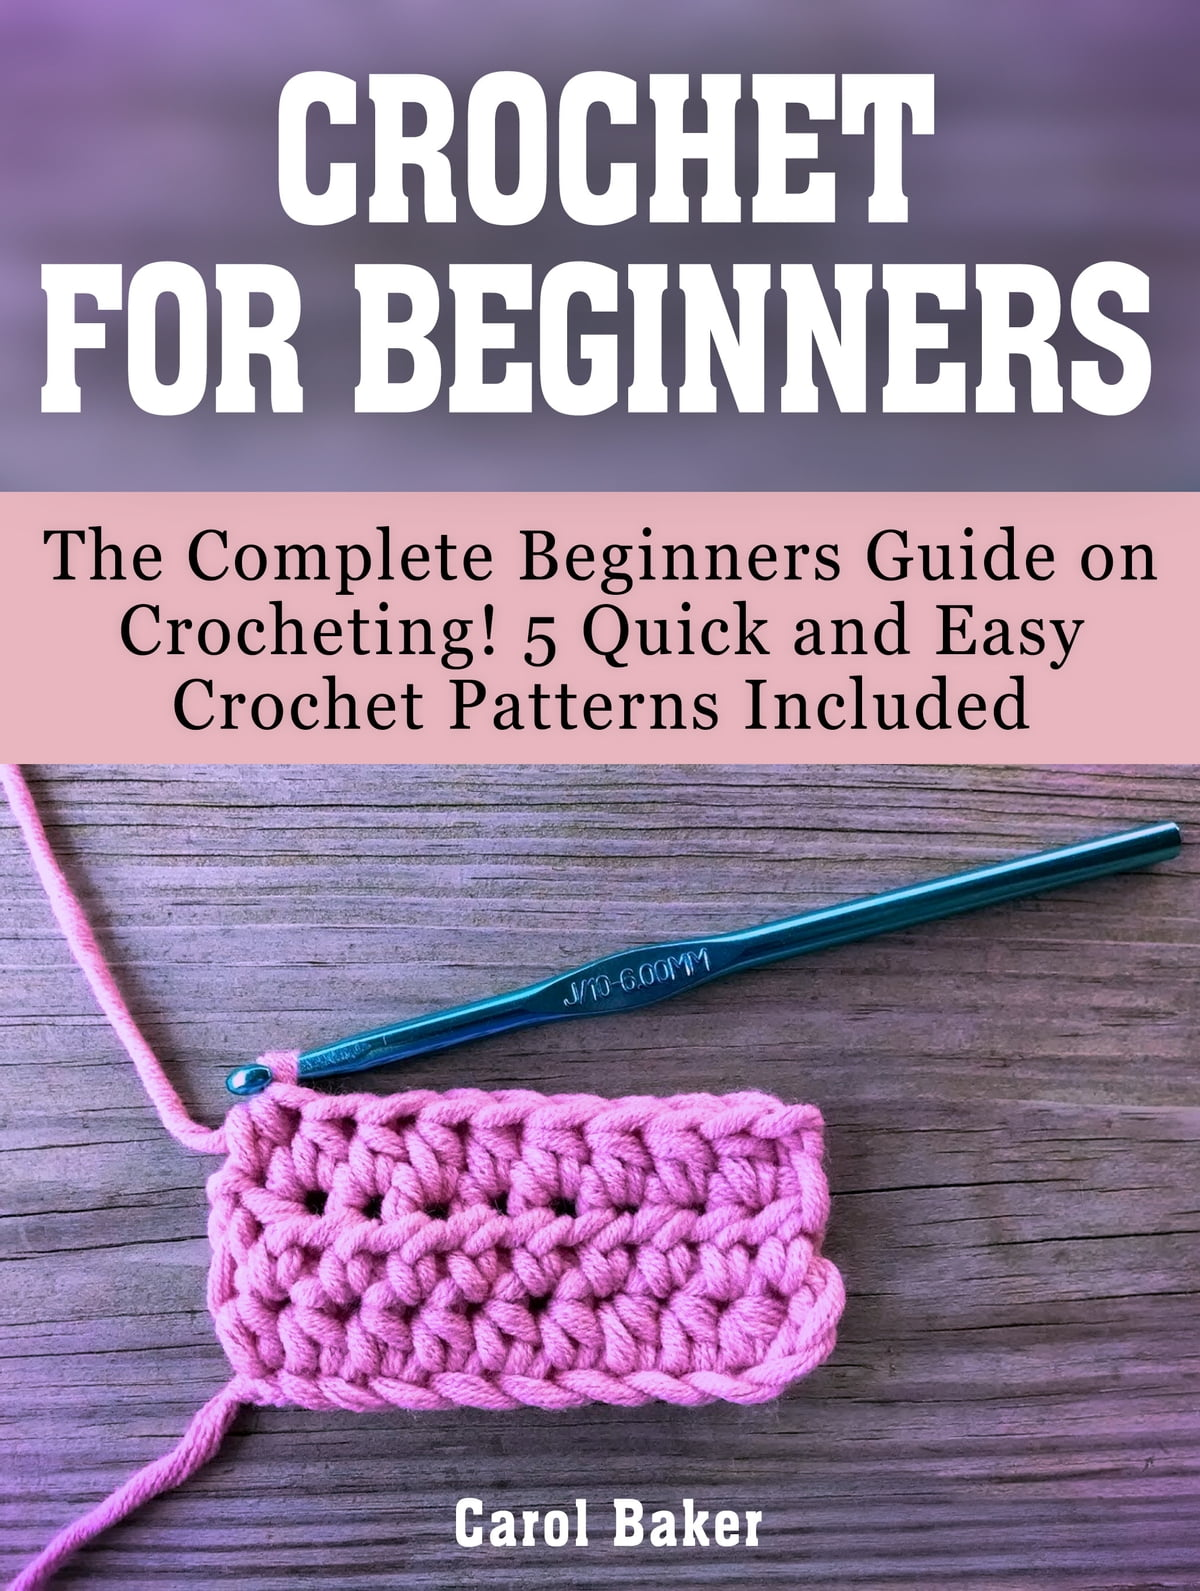 Crochet For Beginners The Complete Beginners Guide On Crocheting 5